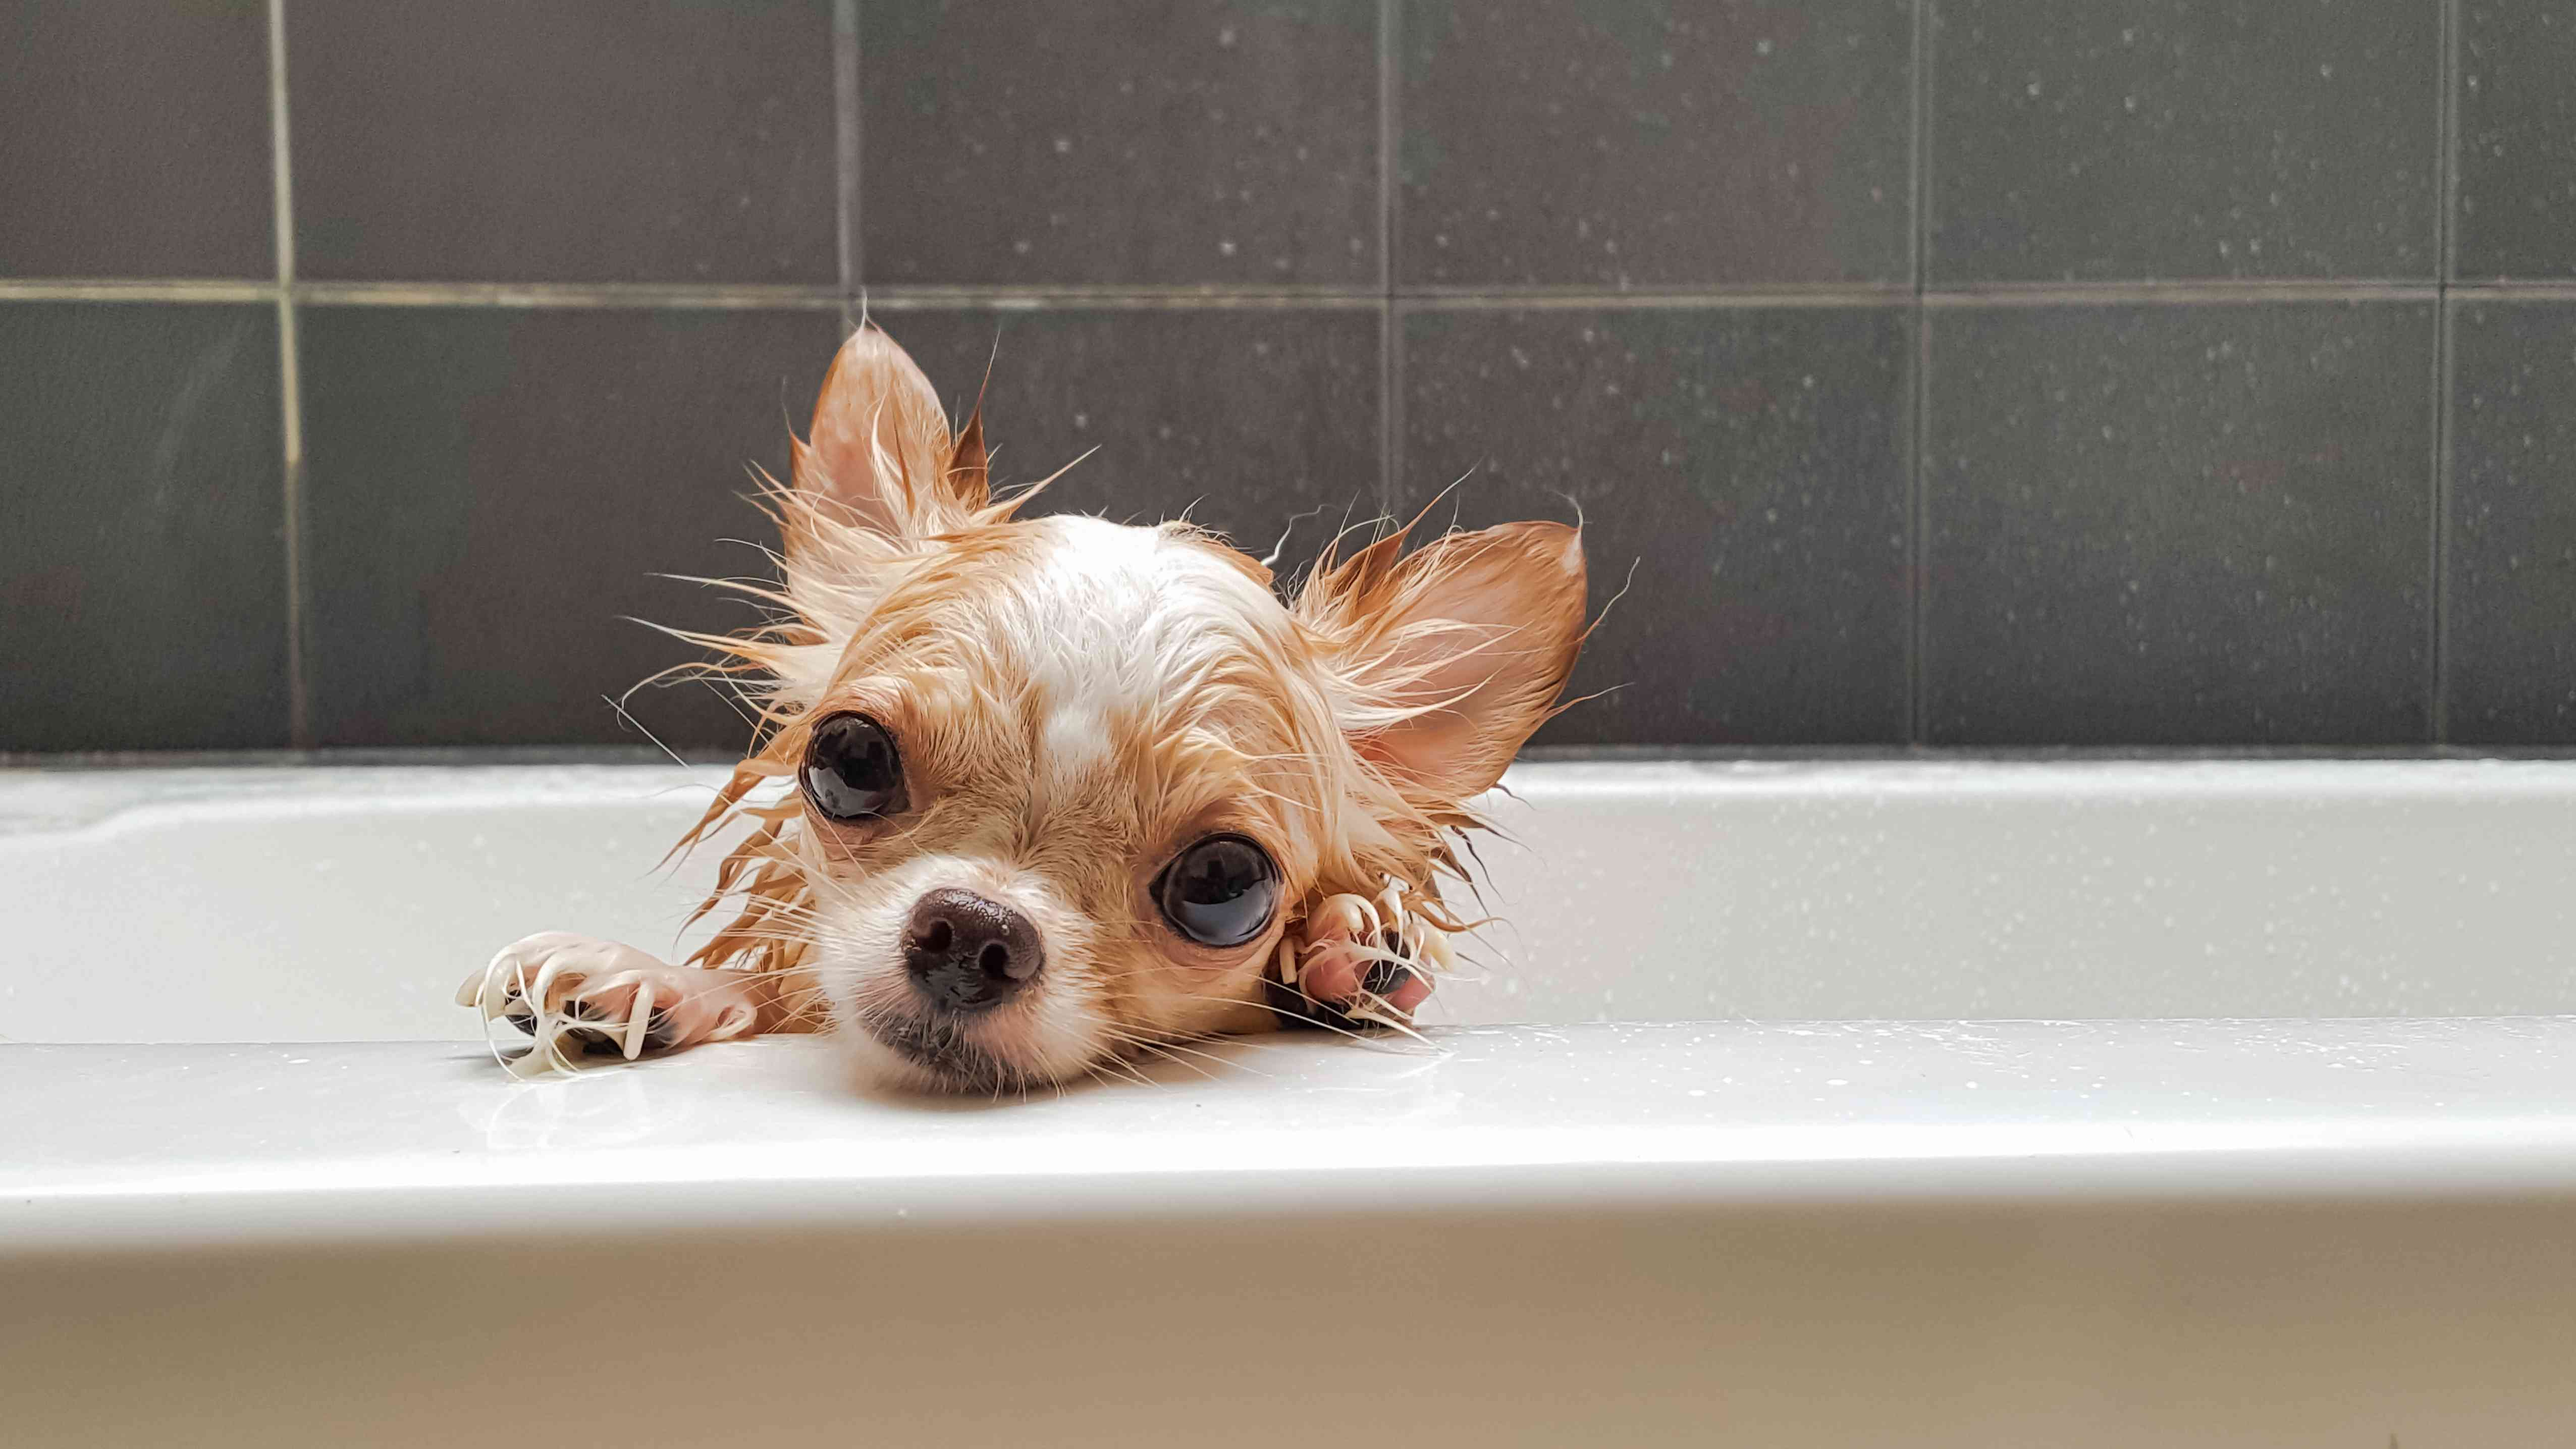 A chihuahua looking over the edge of bathtub